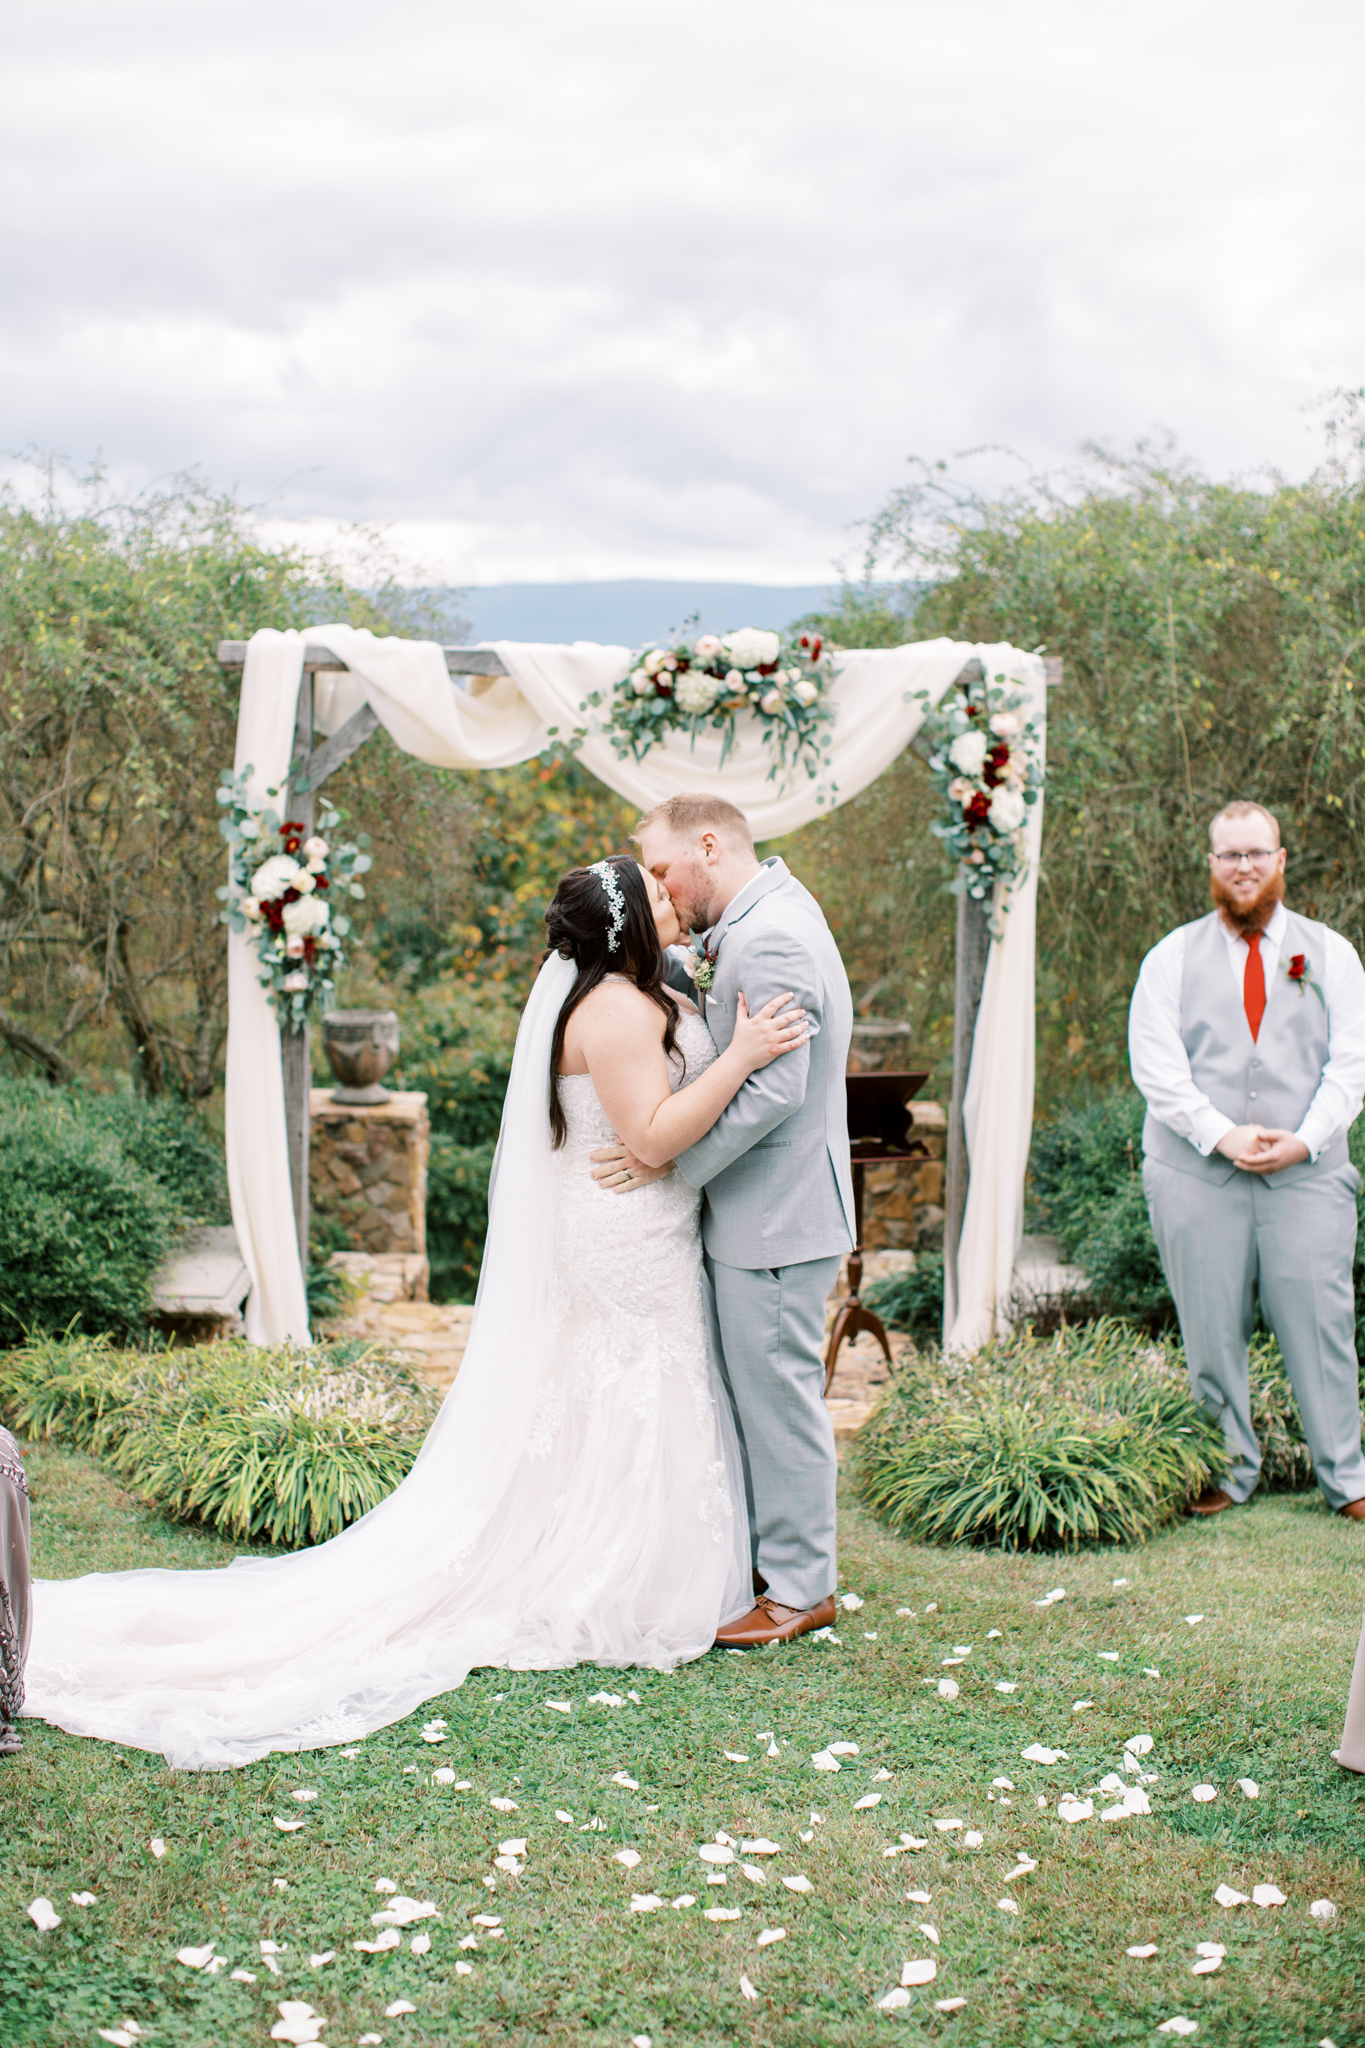 Weddings Unveiled - Bethany S -  Mountain Willow Manor - Whitwell TN - Mariah Rock Photography